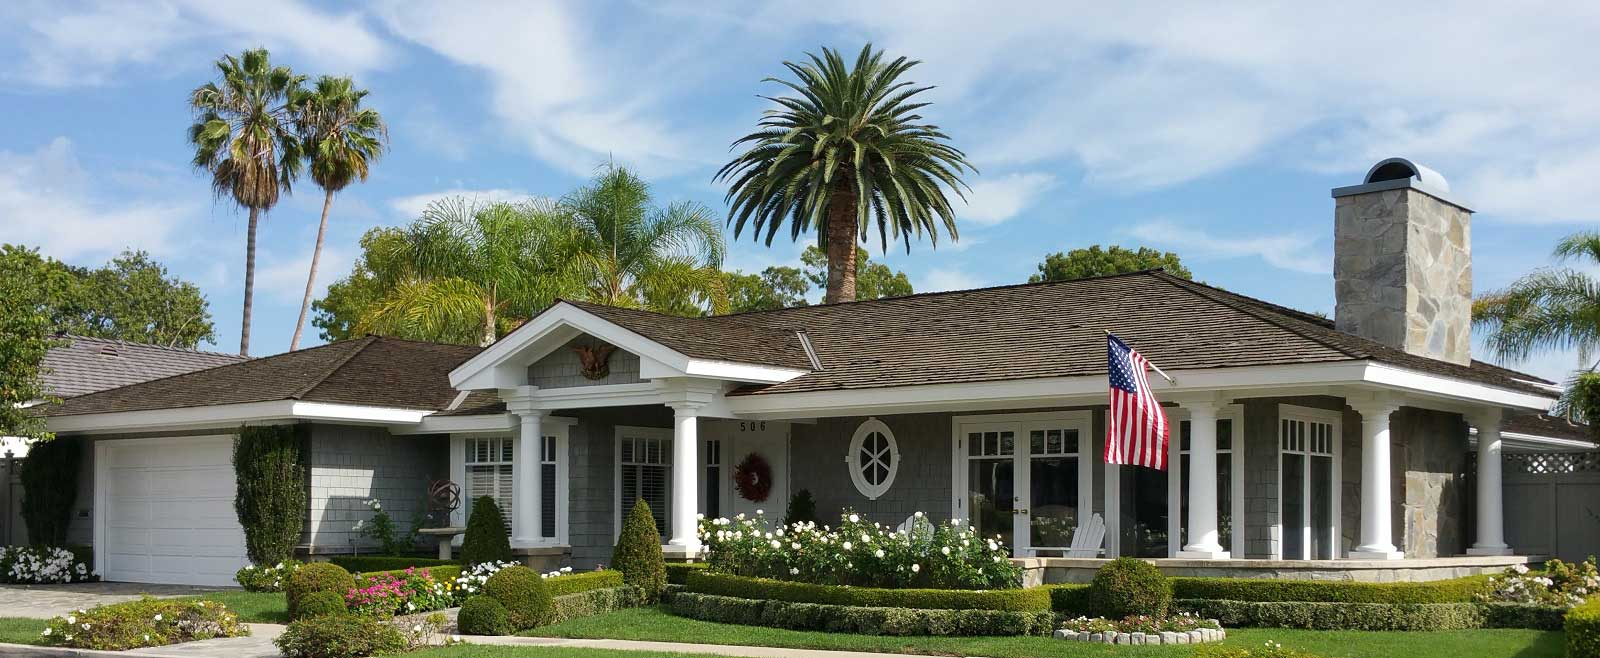 Newport Beach custom home appraisal